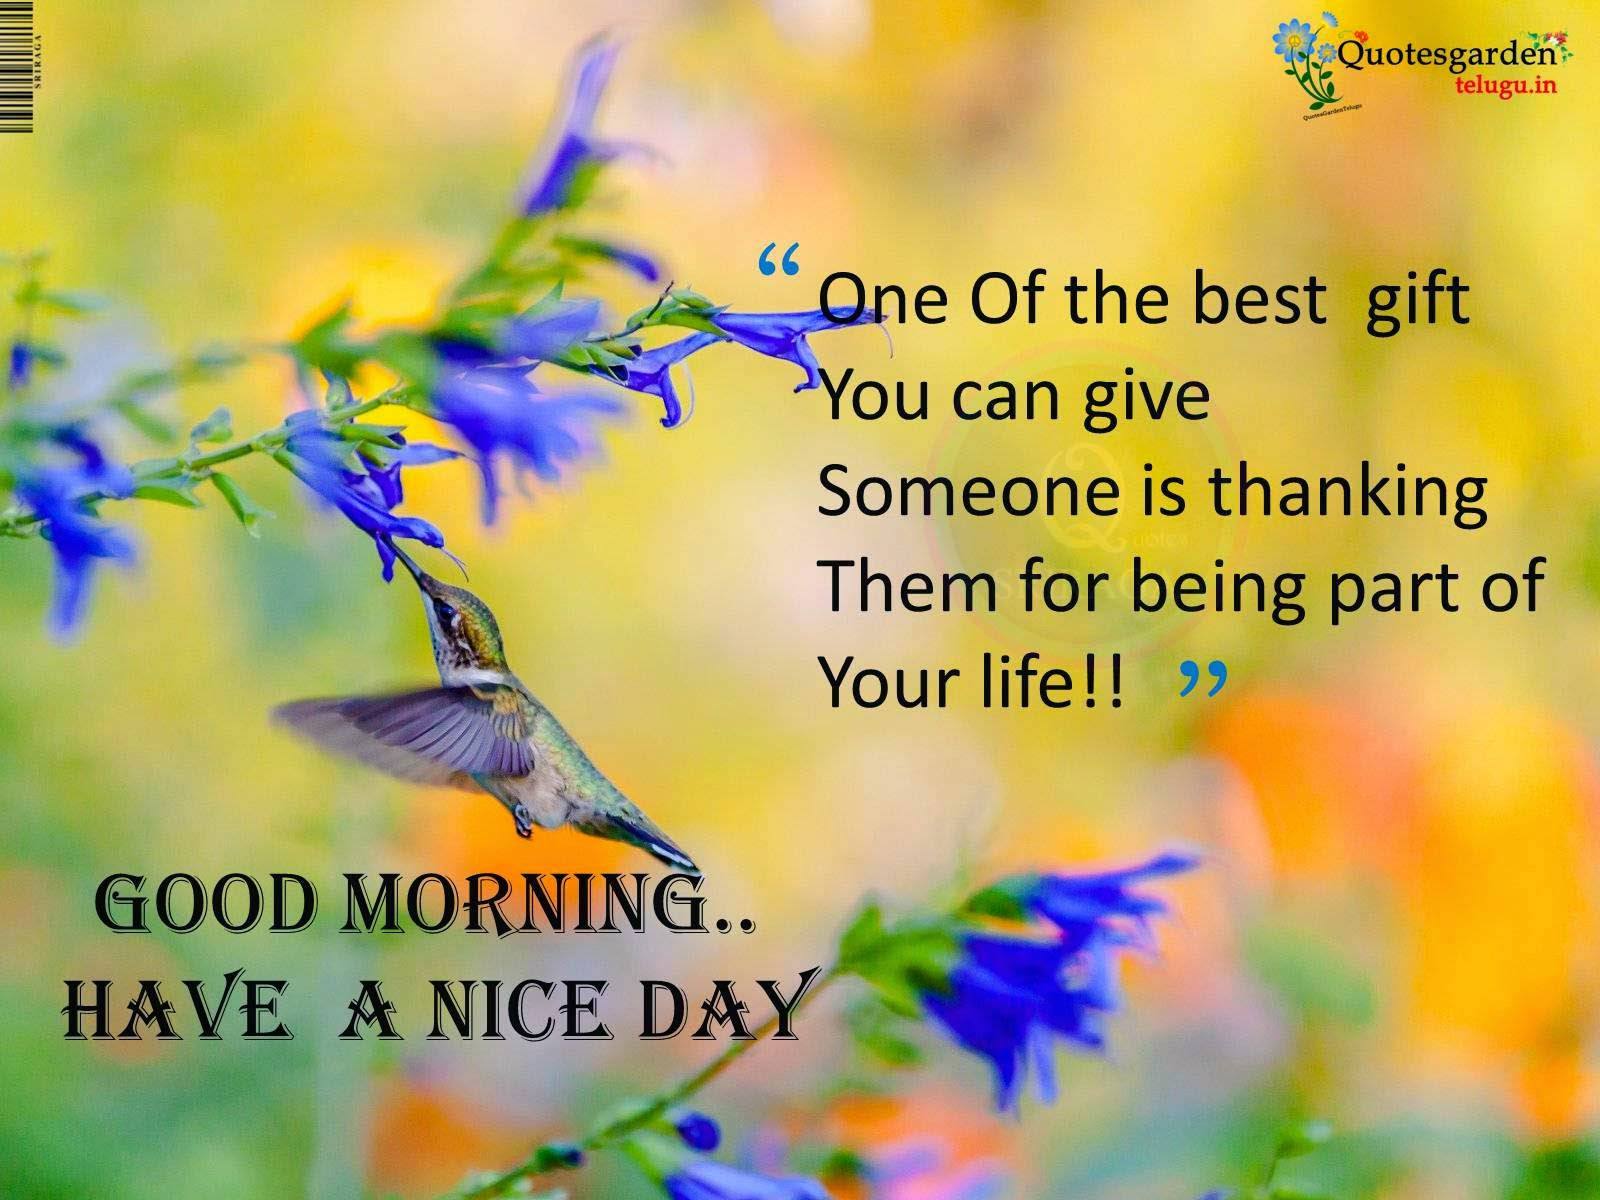 Good morning wishes and greetings for a nice day nicewishes good morning quotes best english quotes top english quotes nice english quotes kristyandbryce Image collections